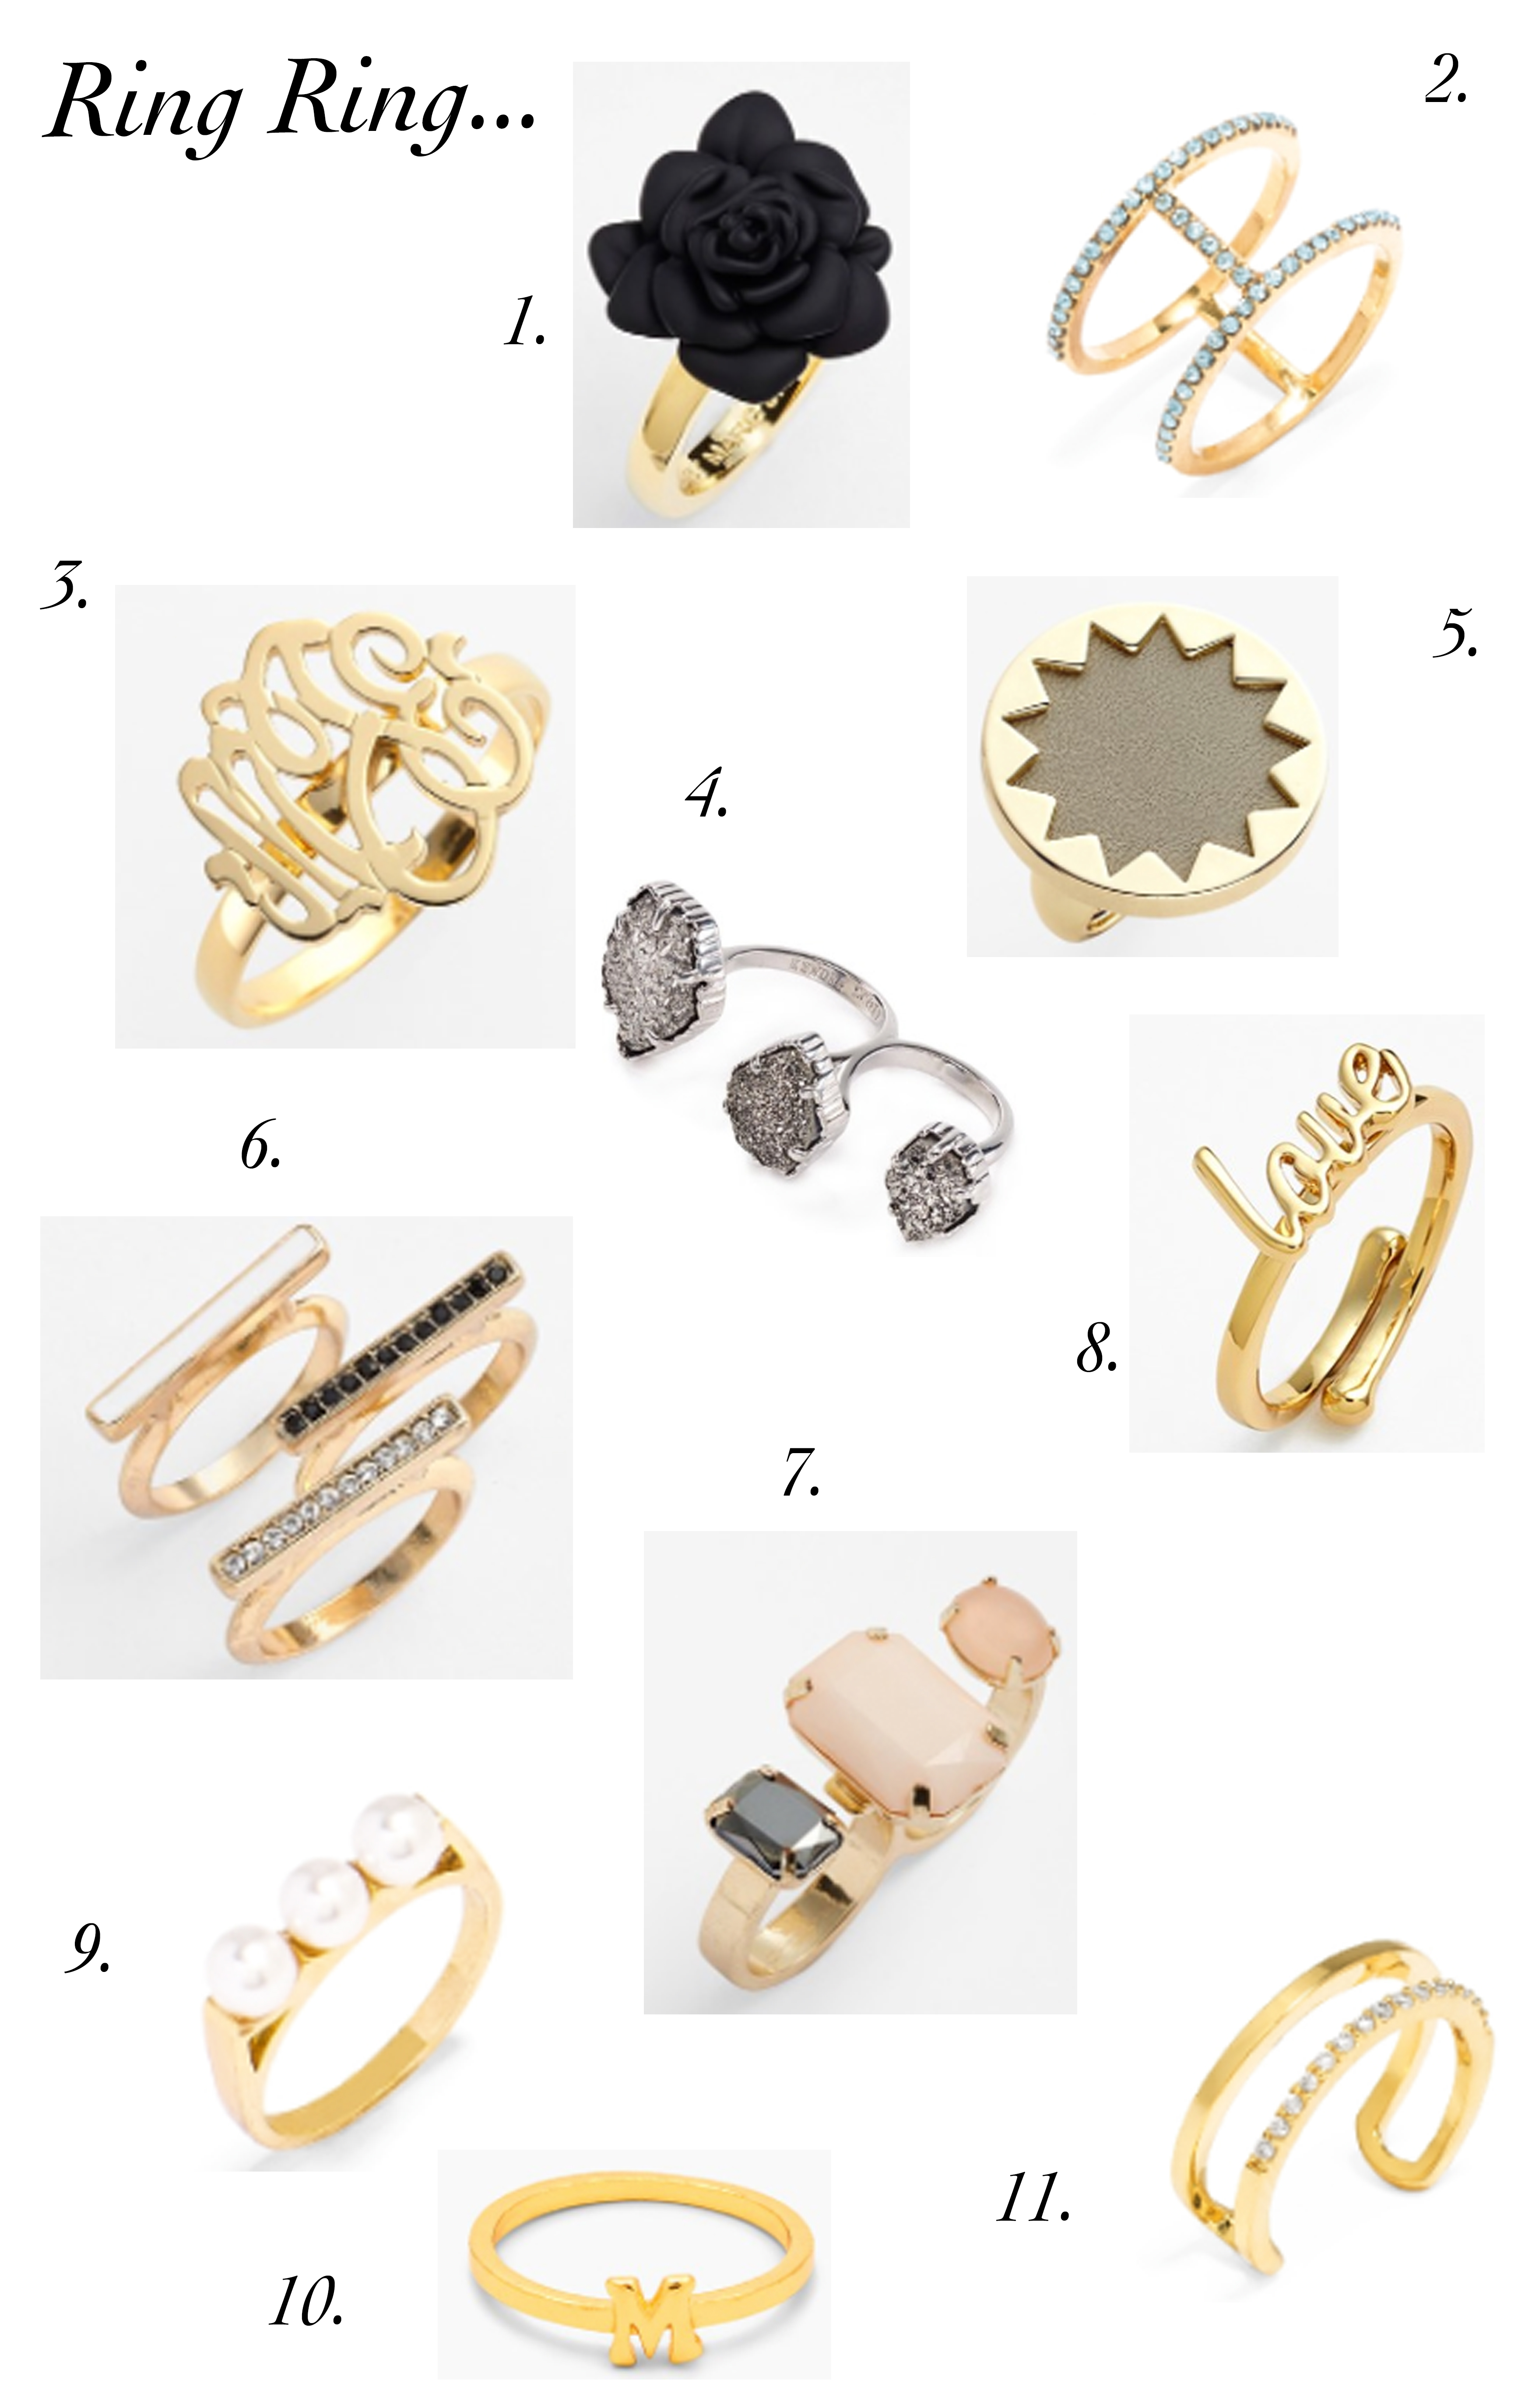 Fashion Rings + Midi Rings Under $150 // Kendra Scott Kate Spade Gorjana Nordstrom Monogram Ring